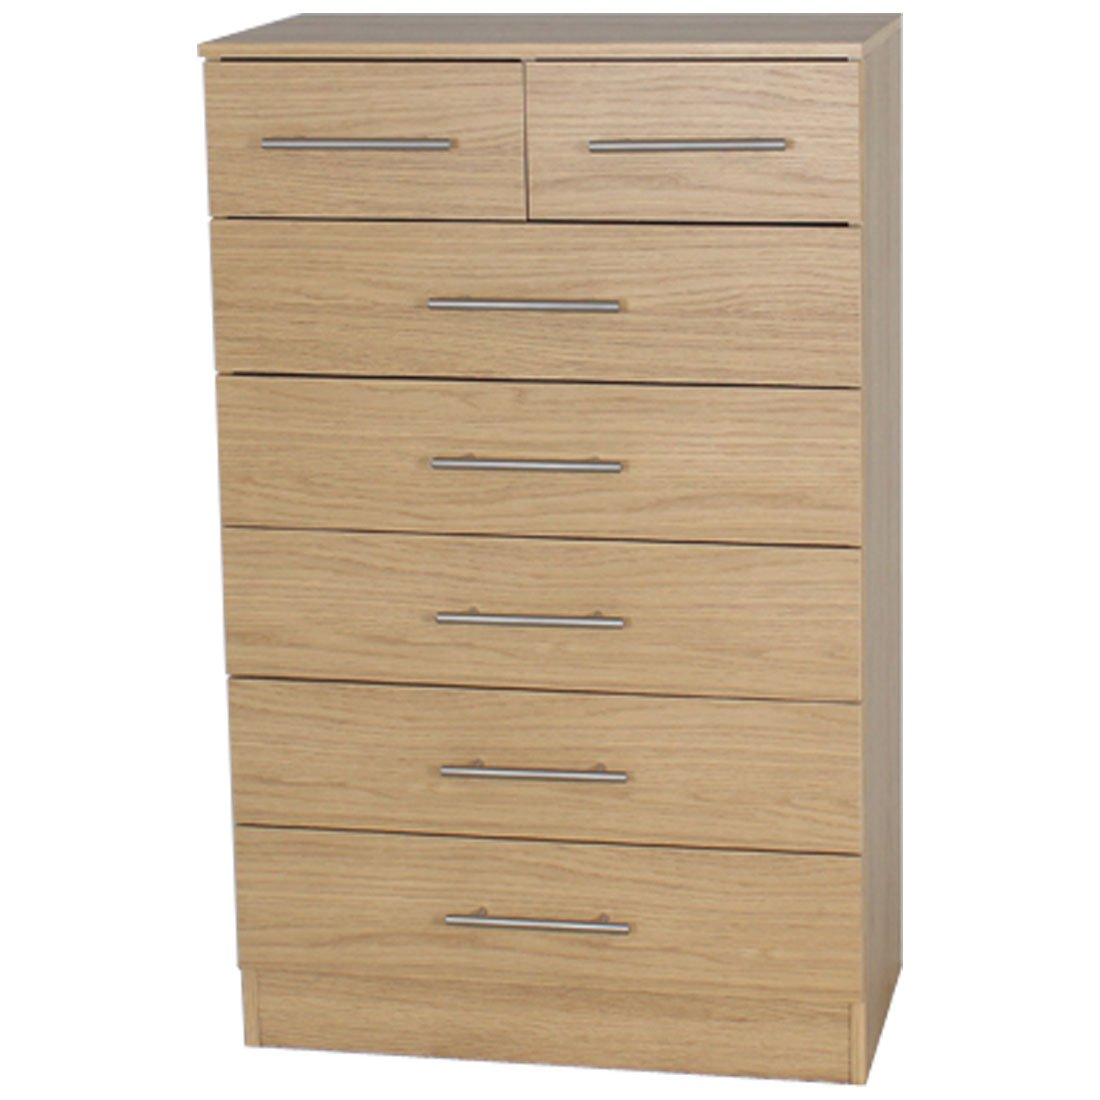 Devoted2Home Humber Bedroom Furniture with 3-Drawer Bedside Cabinet/Table, Wood, White, 35.20 x 34.29 x 59.2 cm AA510103HUM